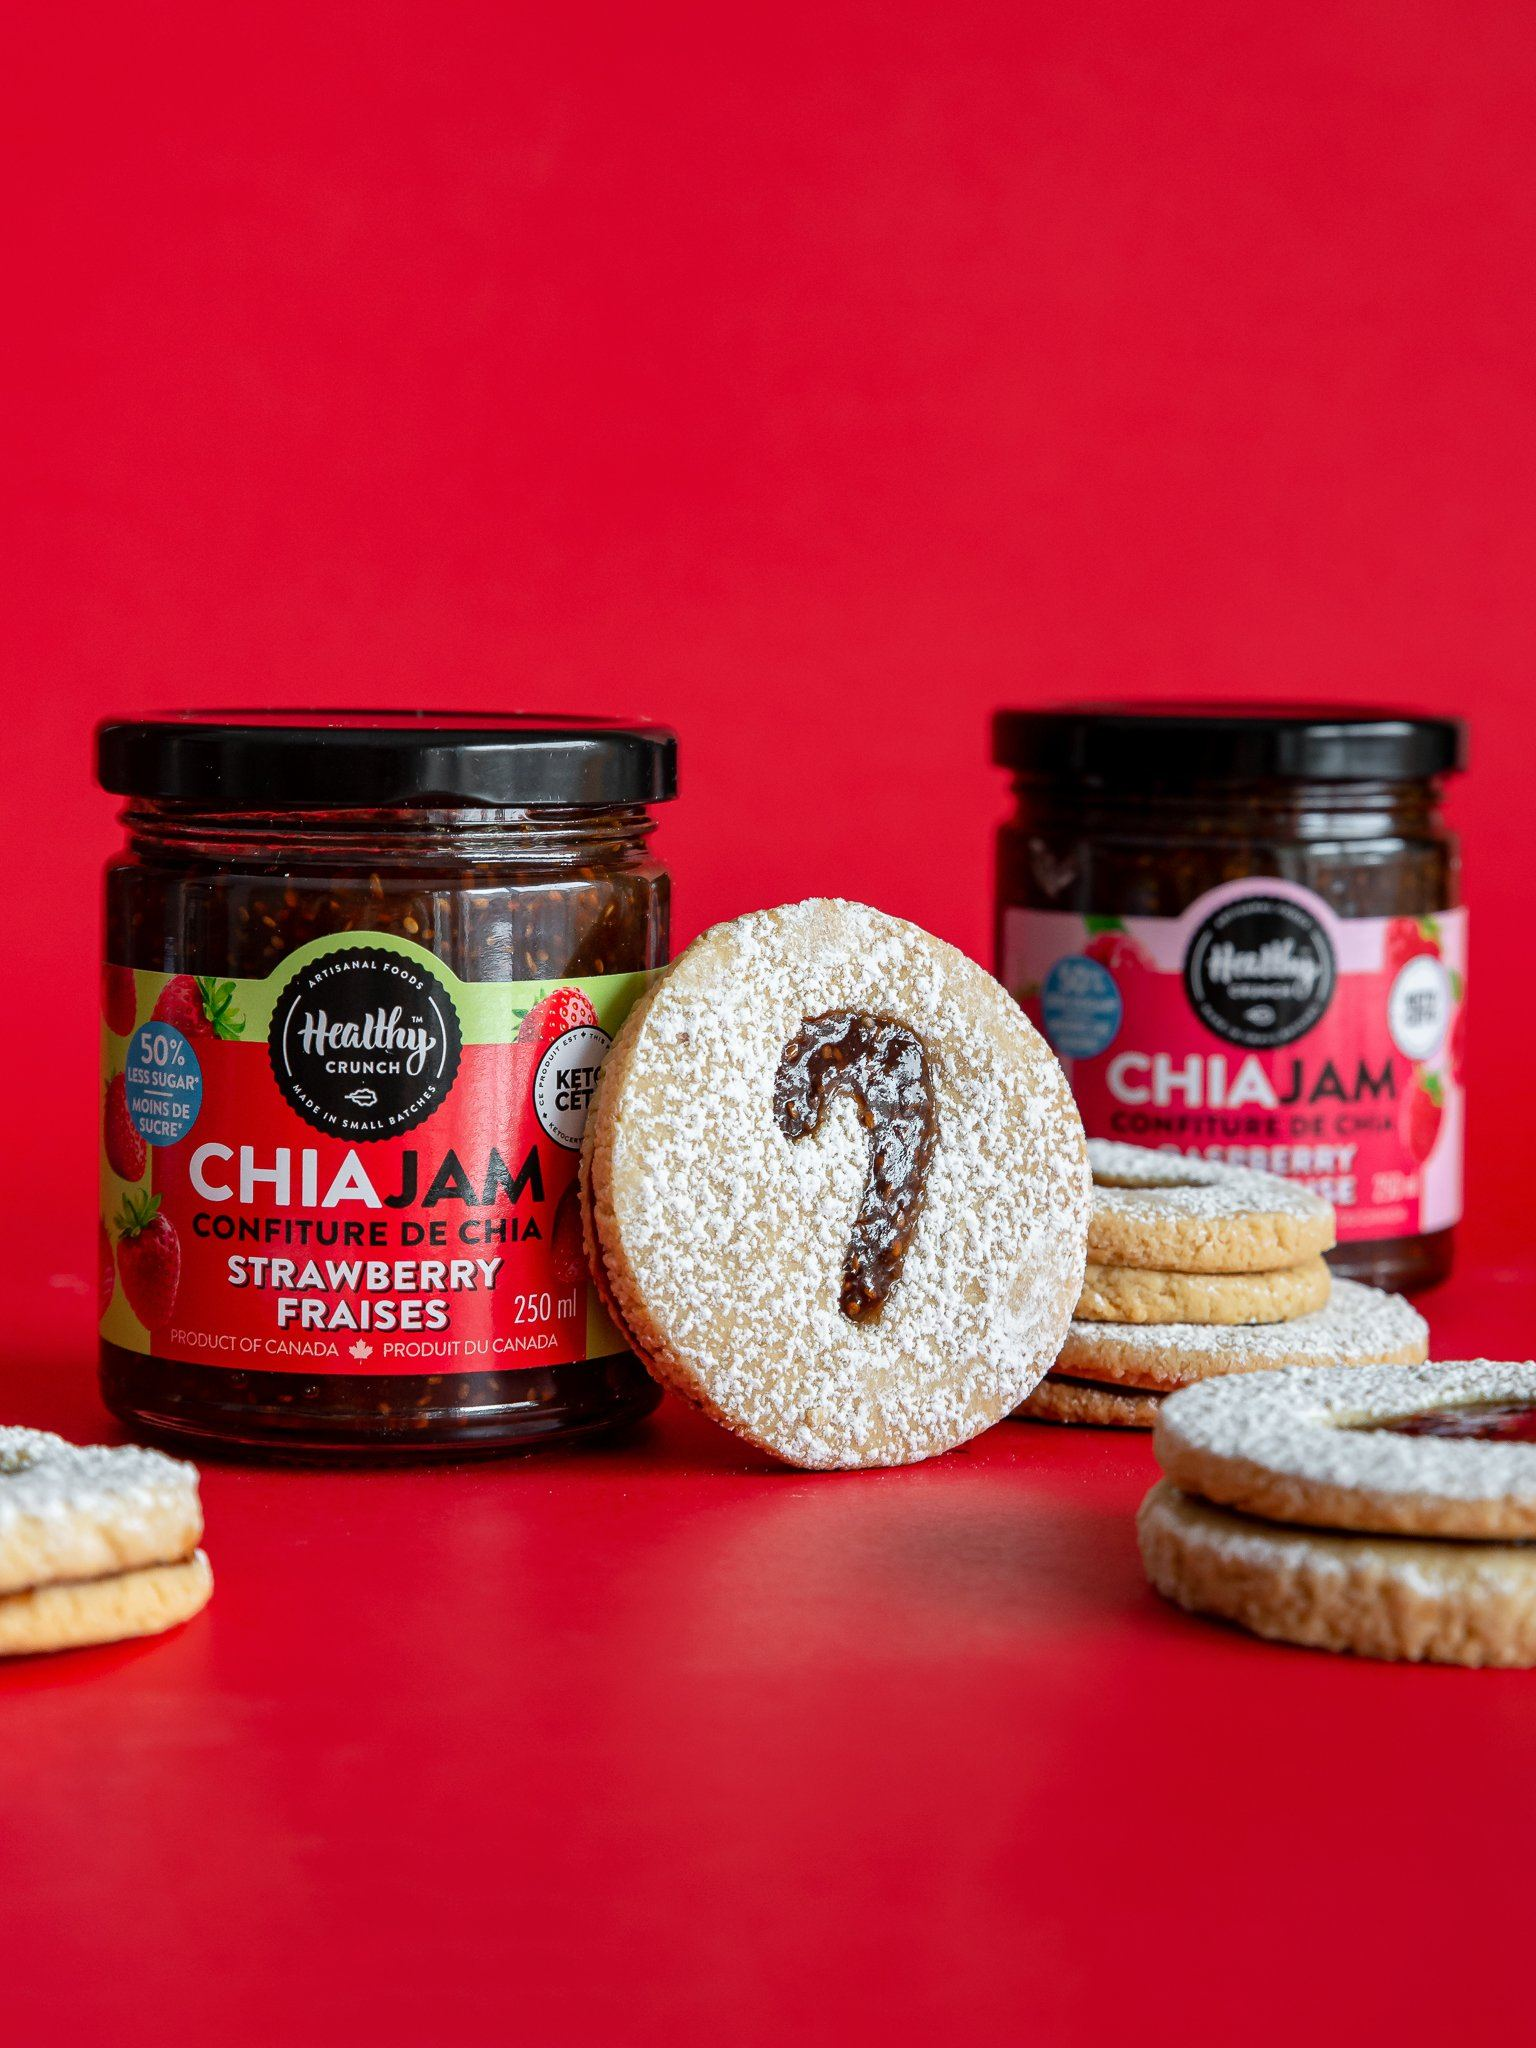 Chia Jam Christmas Cookies (Gluten-free, dairy-free, Vegan, Allergen-friendly)